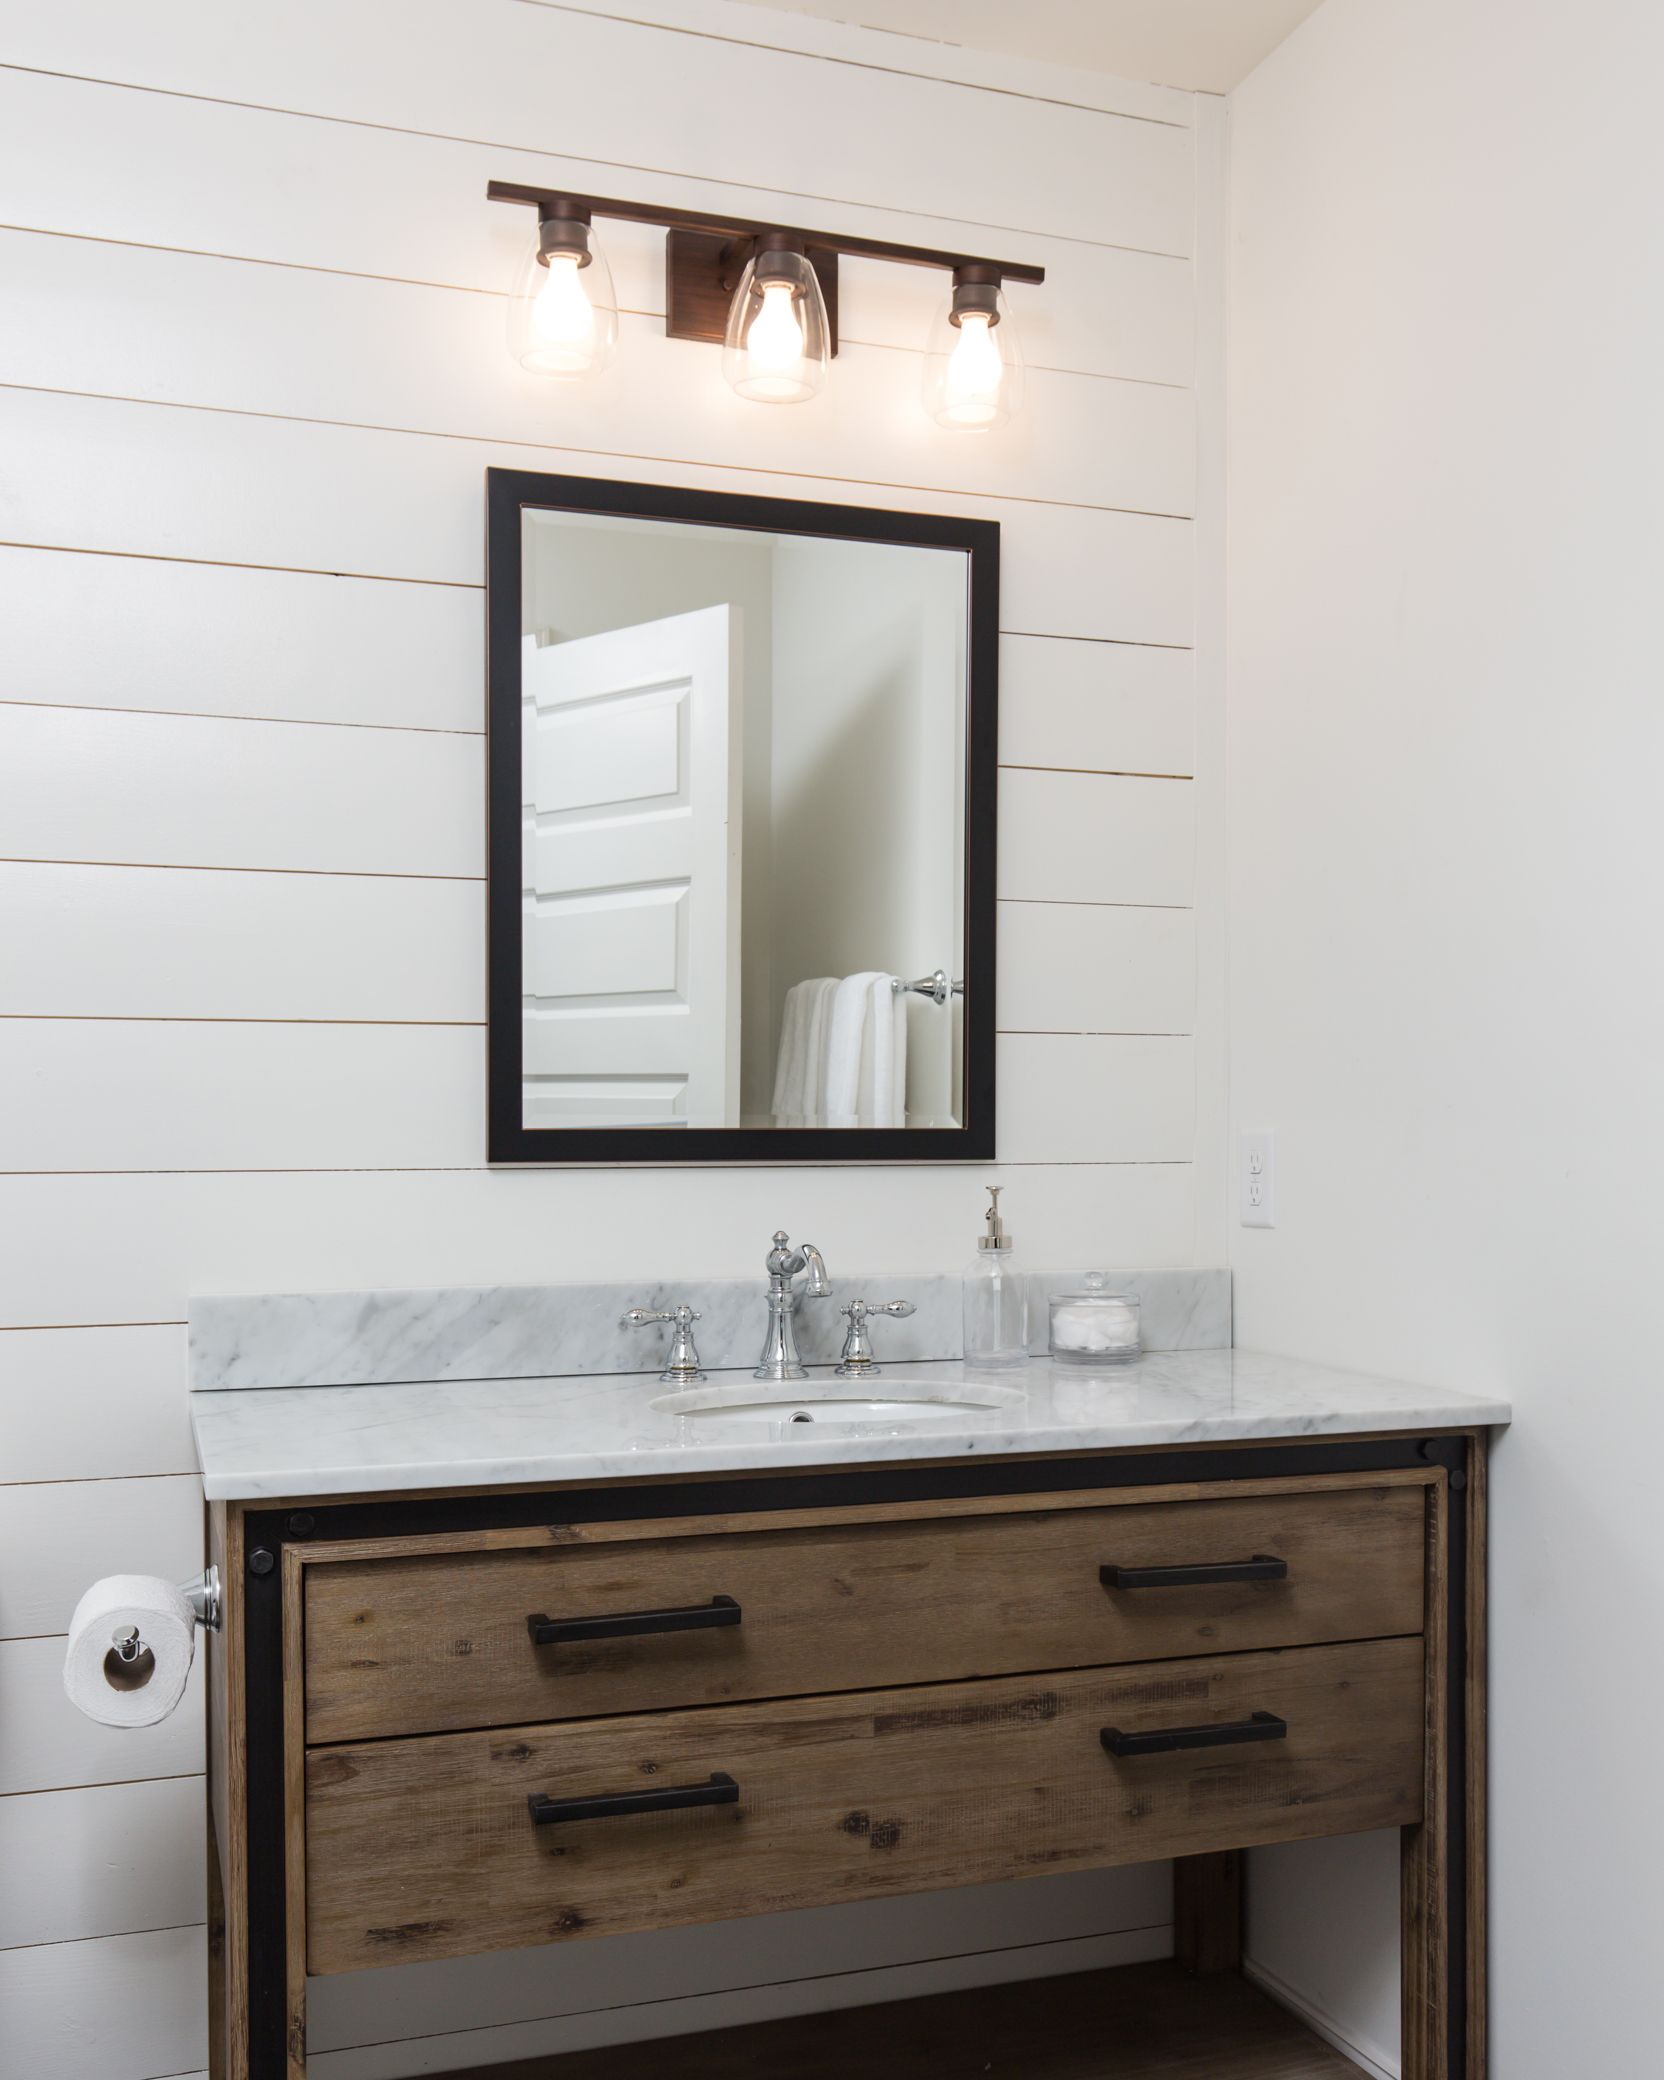 Superbe 1310 N 26th   Home Renovation In Richmond, VA, White Shiplap Bathroom And  Wooden